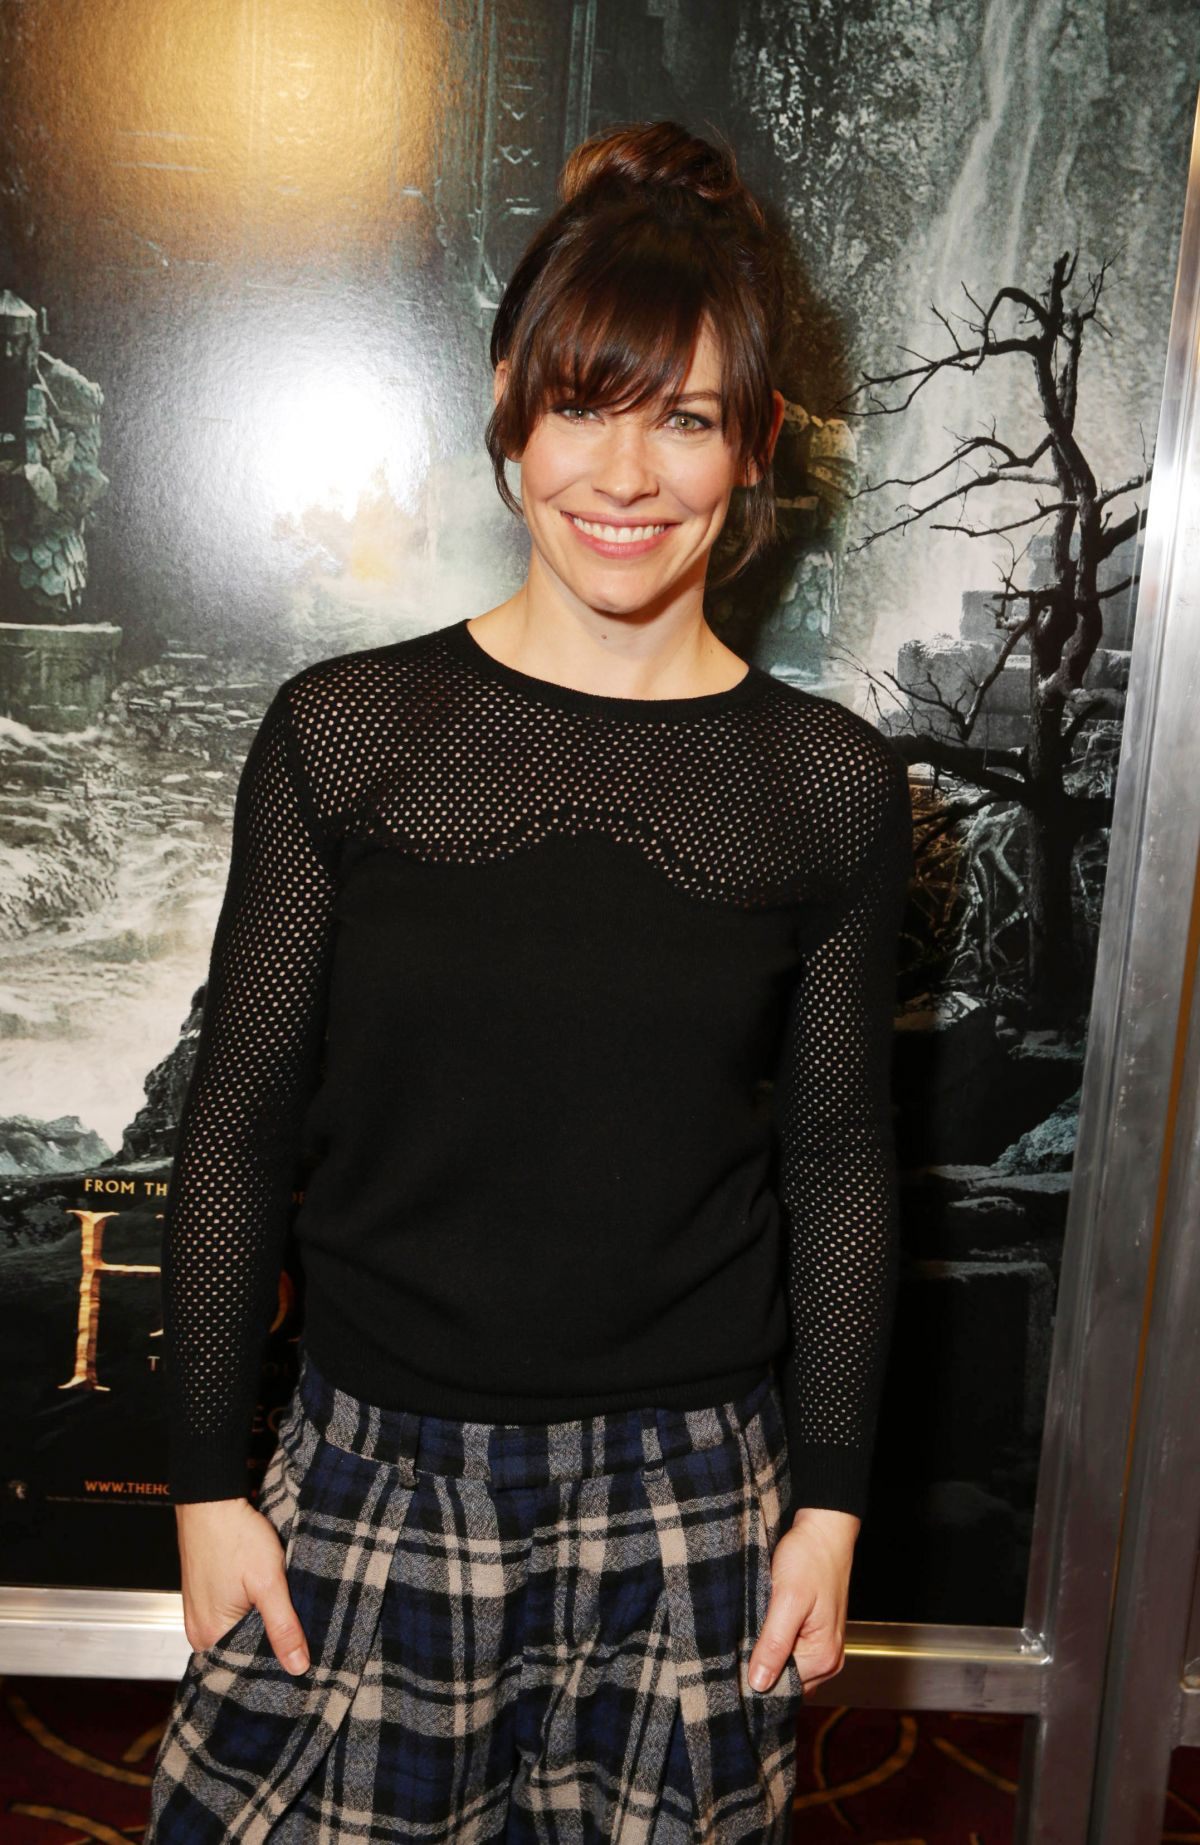 Evangeline Lilly At The Hobbit: The Desolation Of Smaug Fan Event In LA